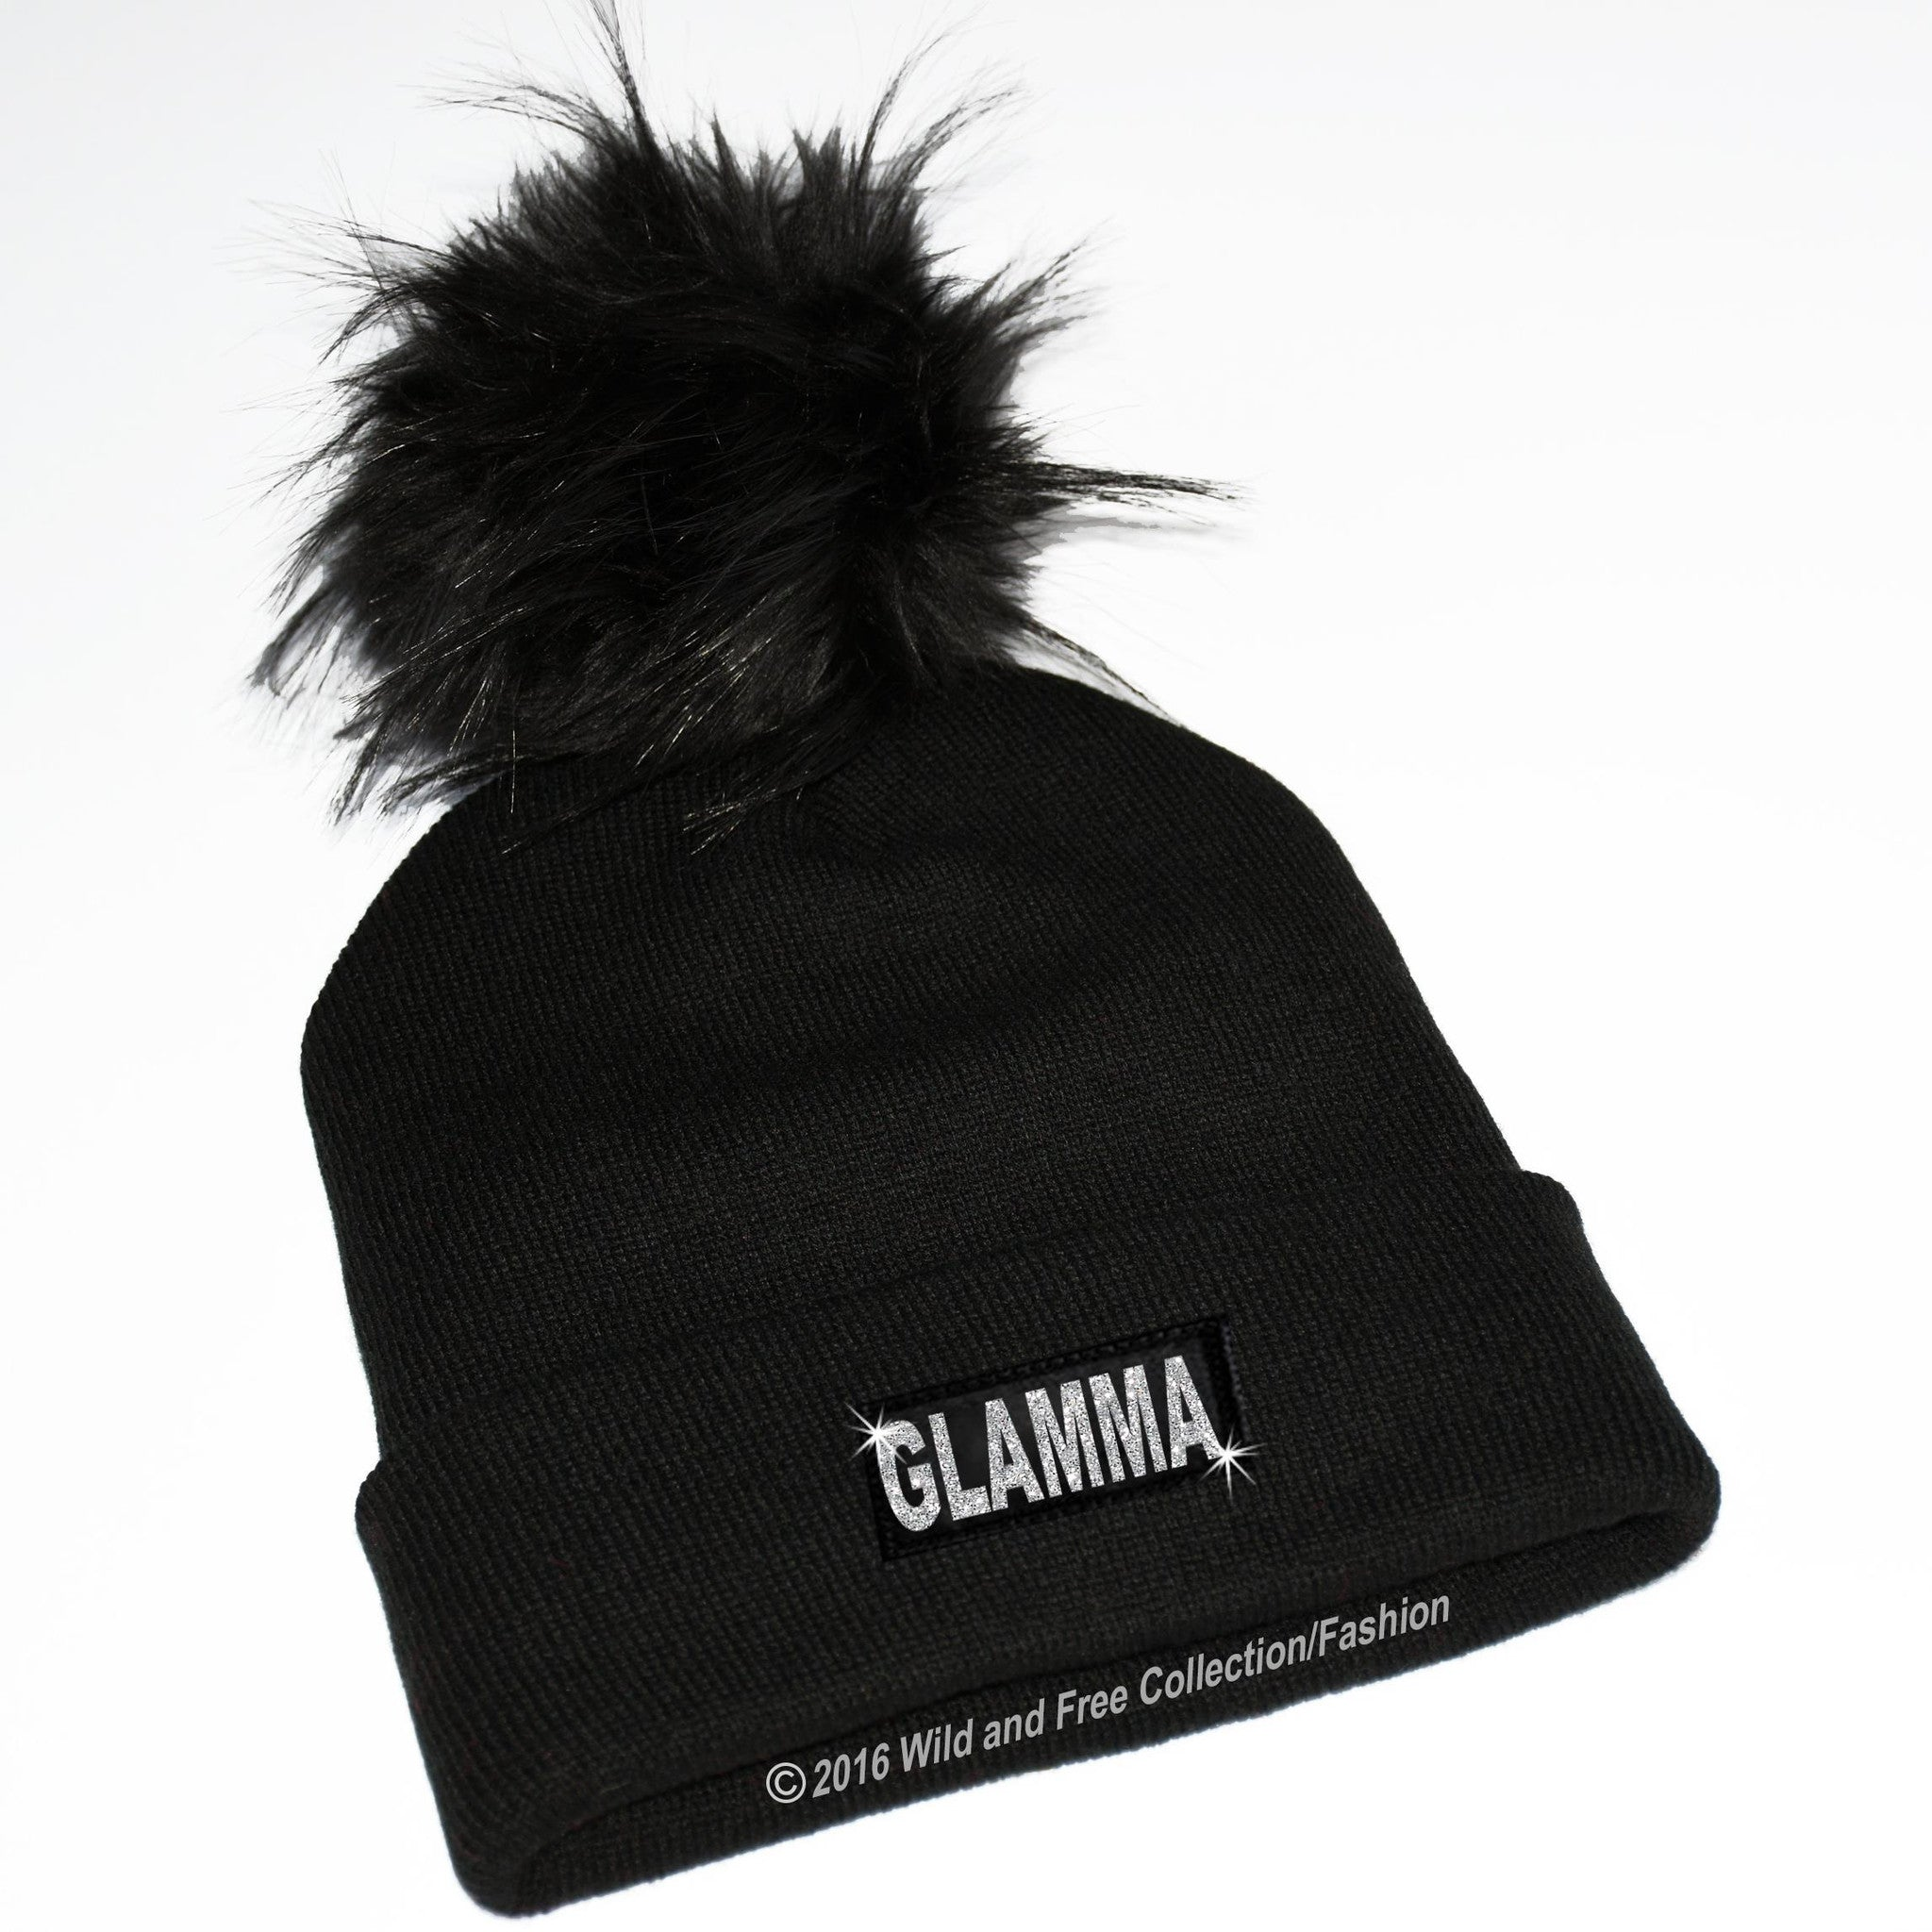 c766ebddd2e glamma beanie hat · beanie hat with large pom pom and graphic glamma ...